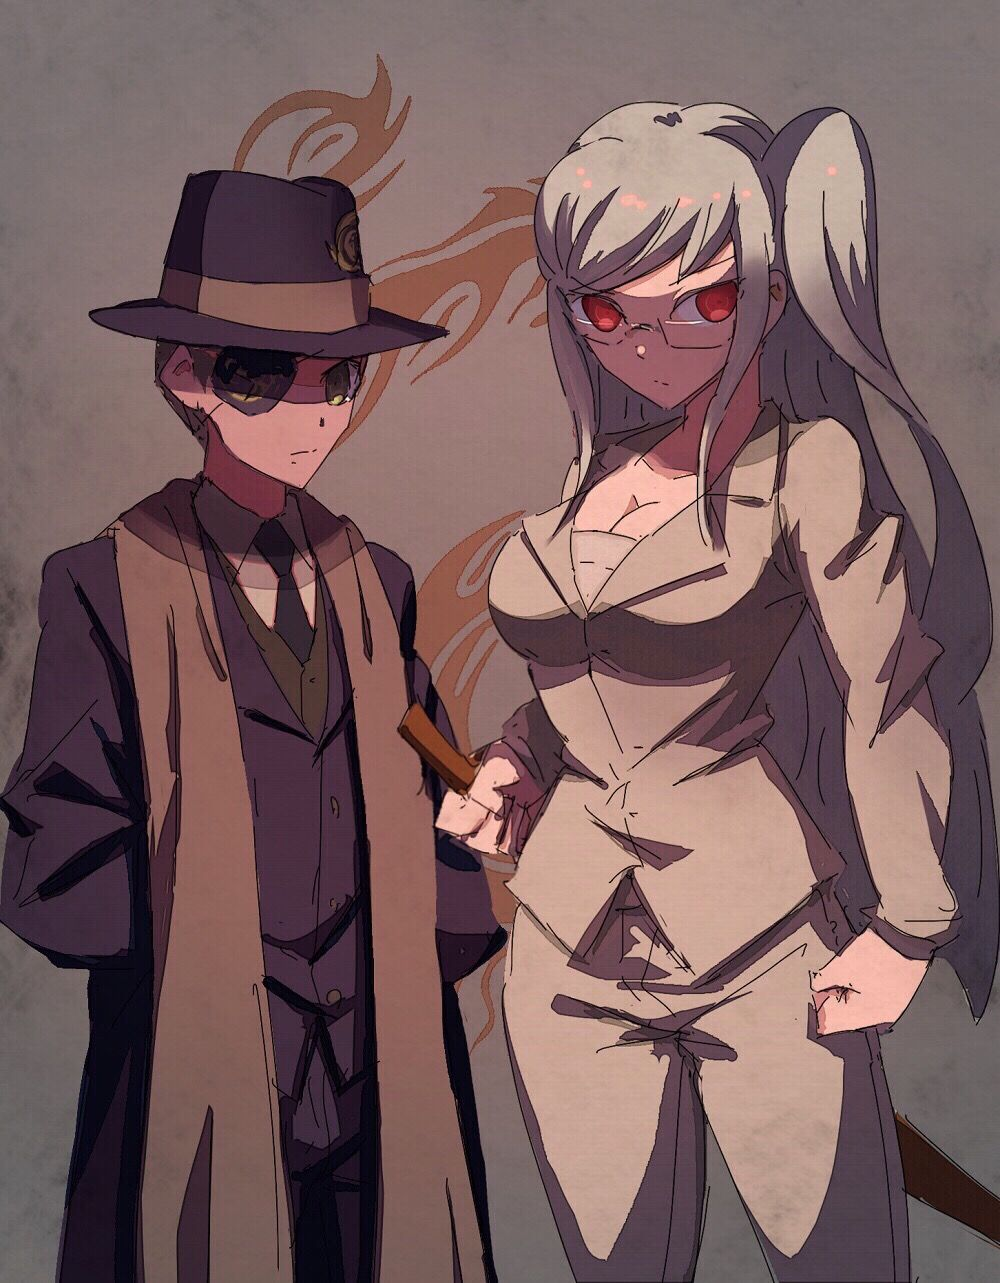 Ultimate Despair Fuyuhiko Kuzuryu And Peko Pekoyama | Danganronpa